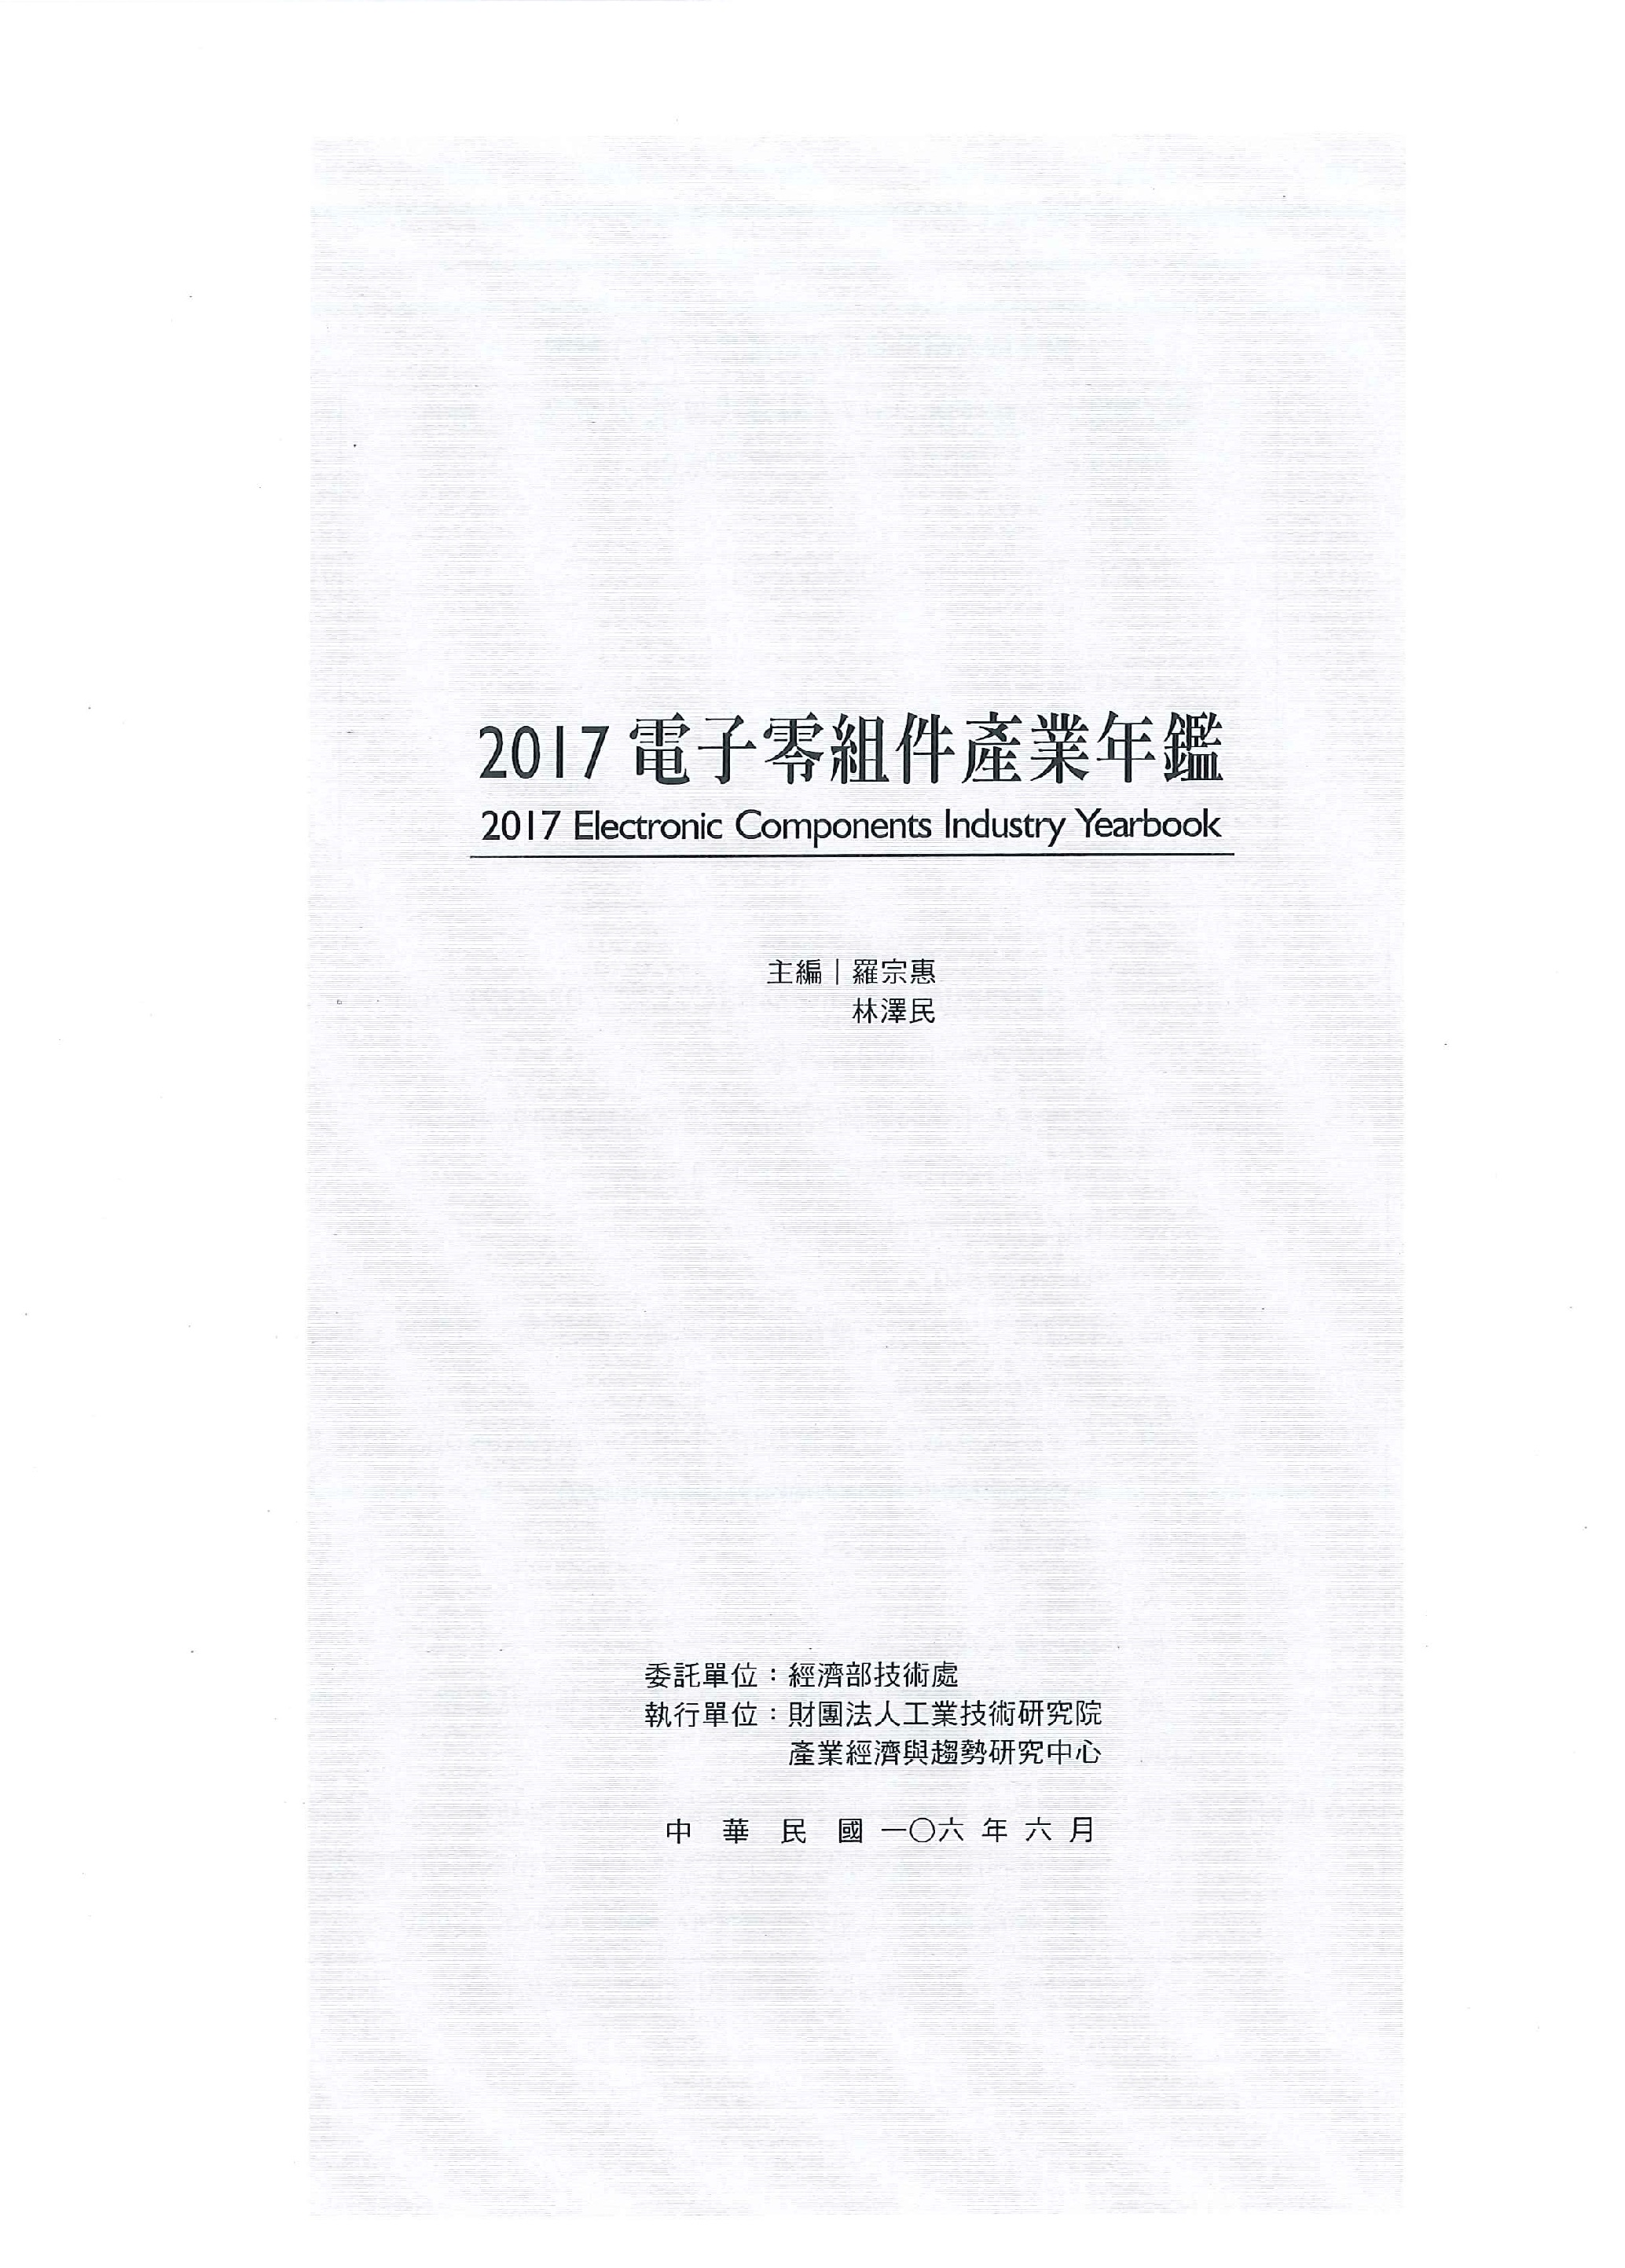 電子零組件產業年鑑=Electronic components industry yearbook